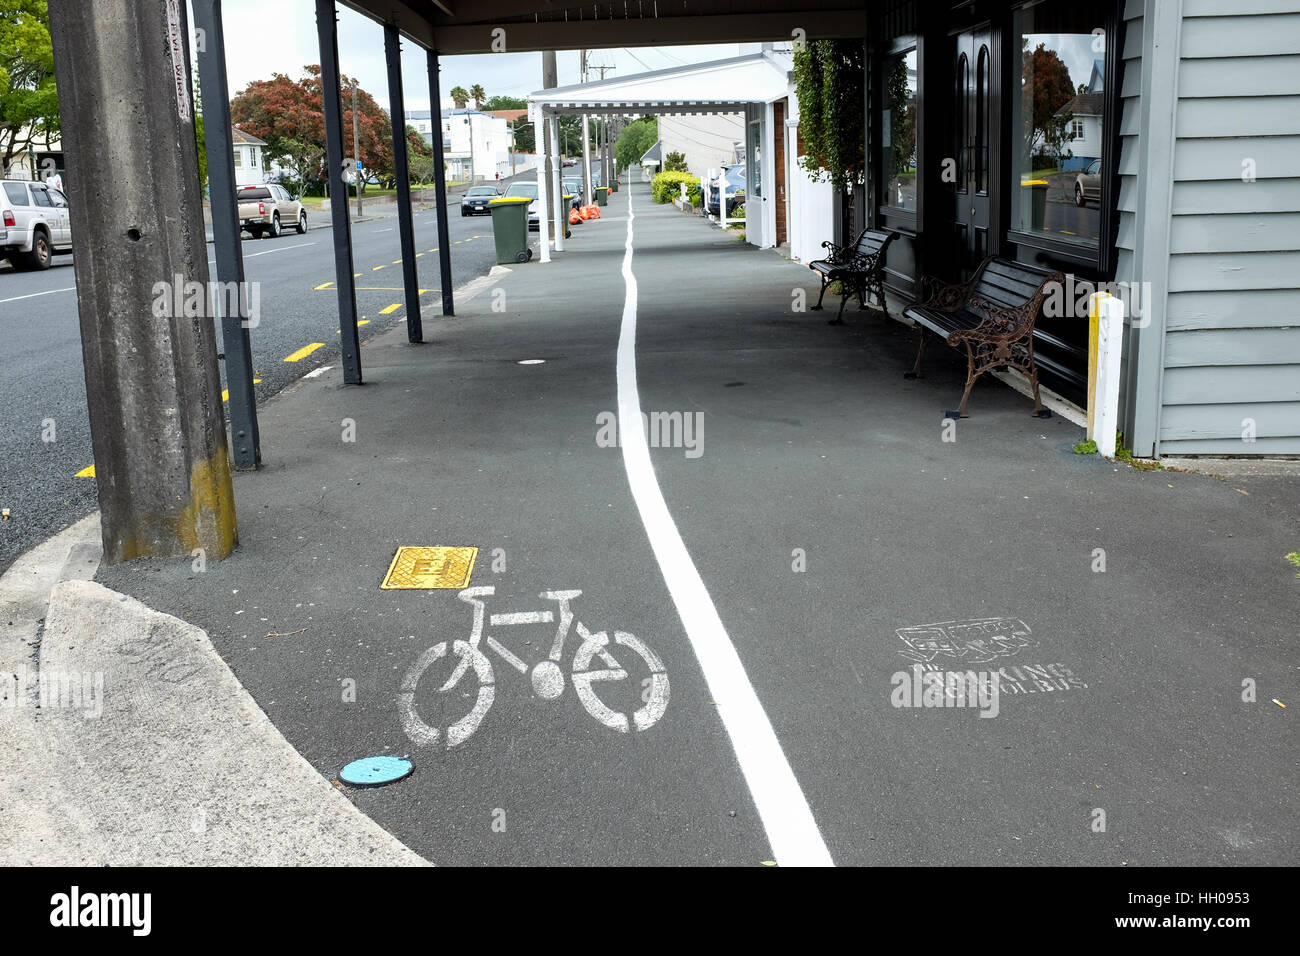 A cycle path in Devonport, a suburb of Auckland, New Zealand. - Stock Image